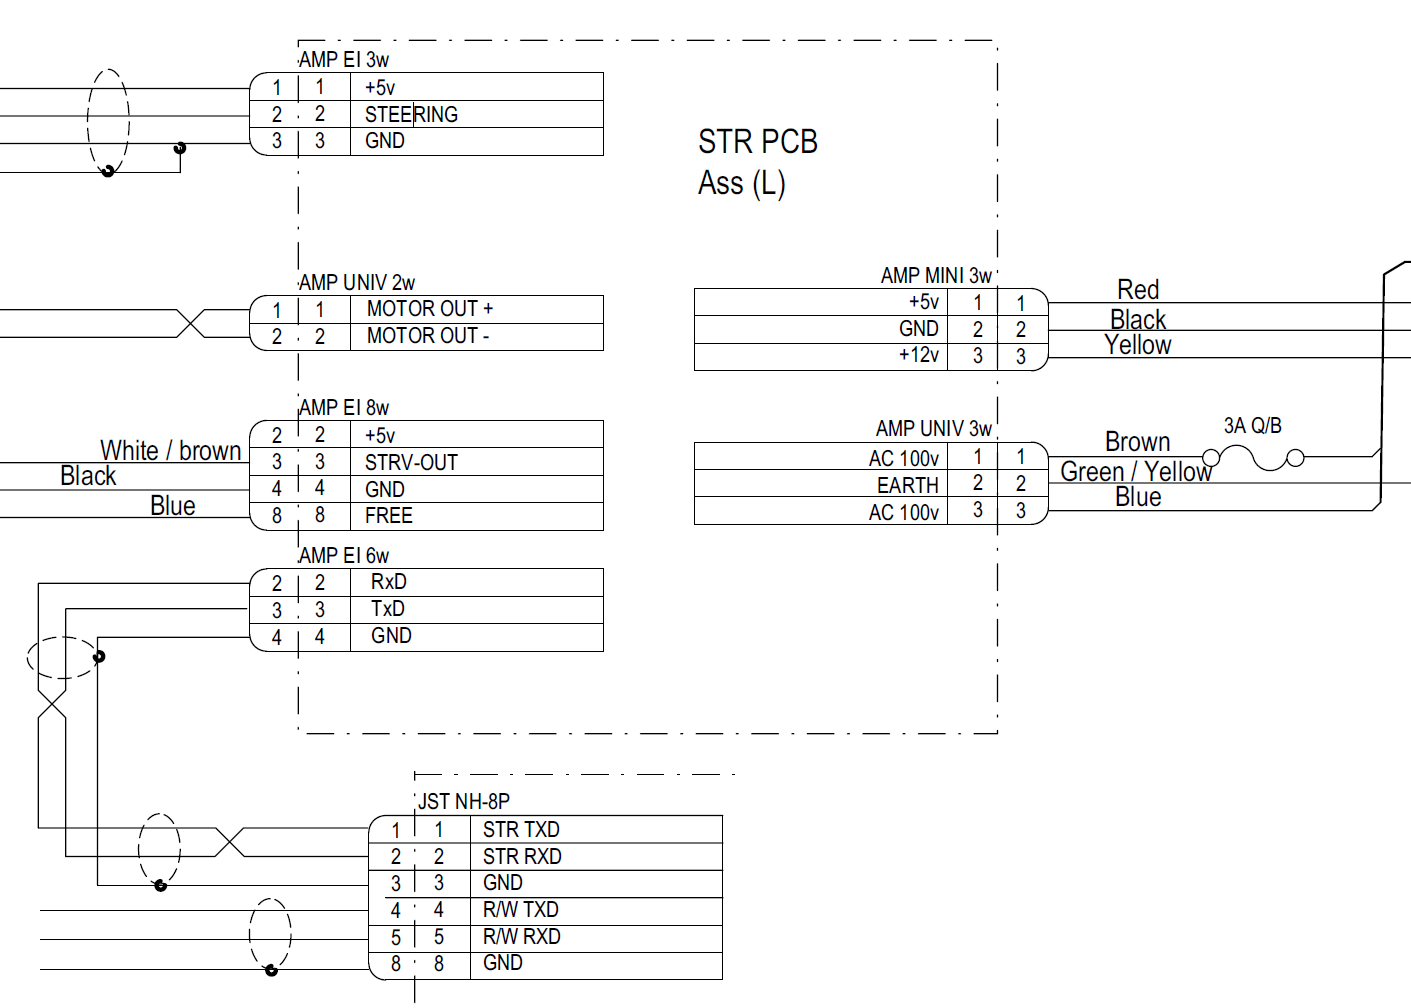 jvs arcade wiring diagram arcade dimensions \u2022 edmiracle co  at crackthecode.co